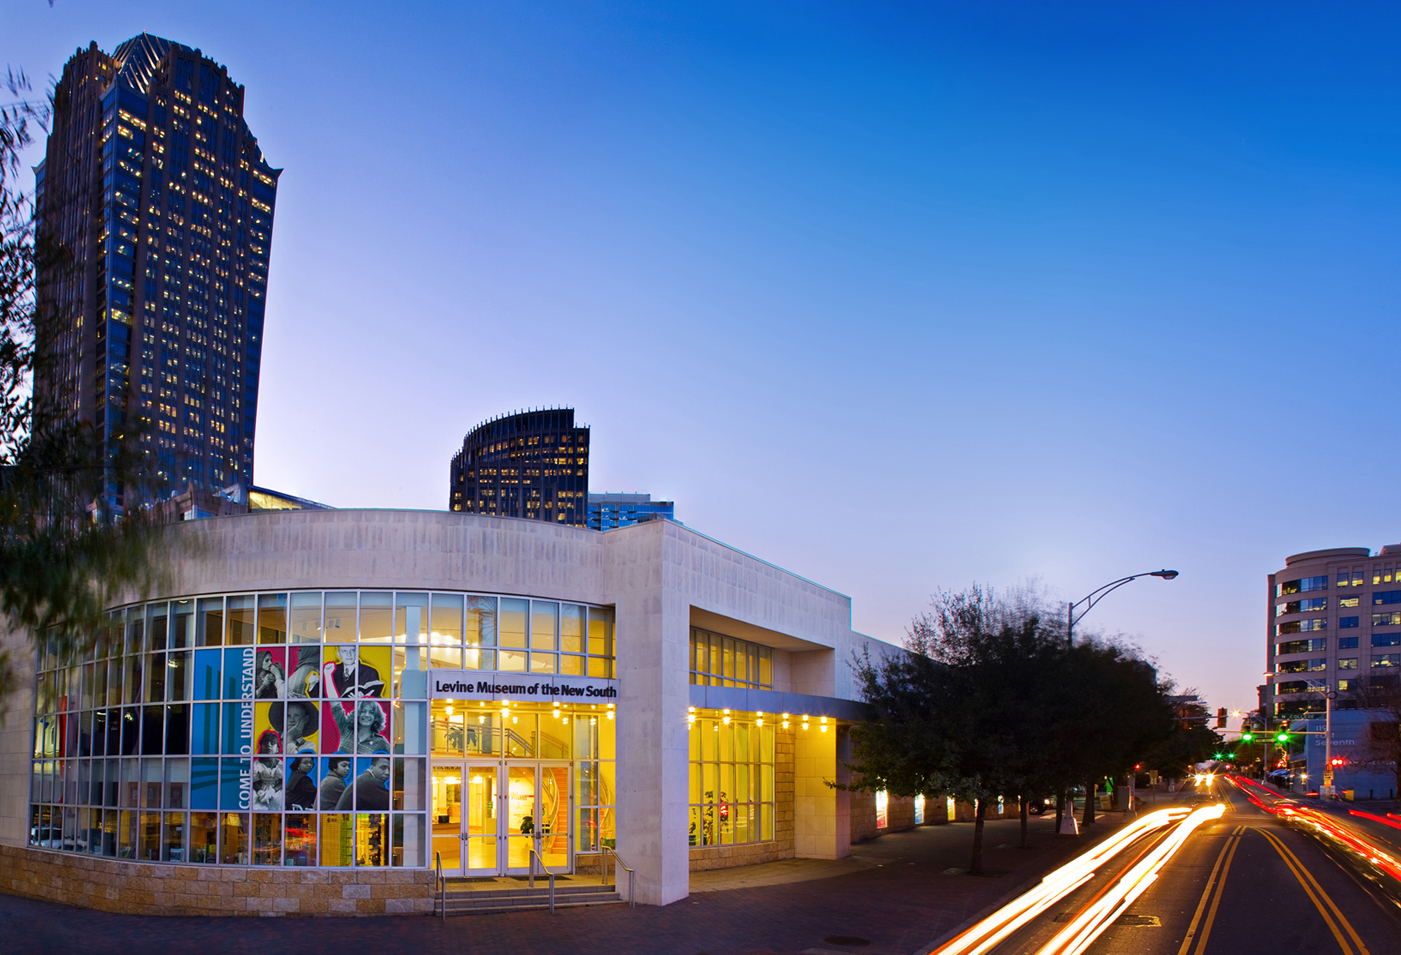 Levine Museum<a href=levine-museum-of-the-new-south>→</a><strong>Beautiful & Educational Space</strong>